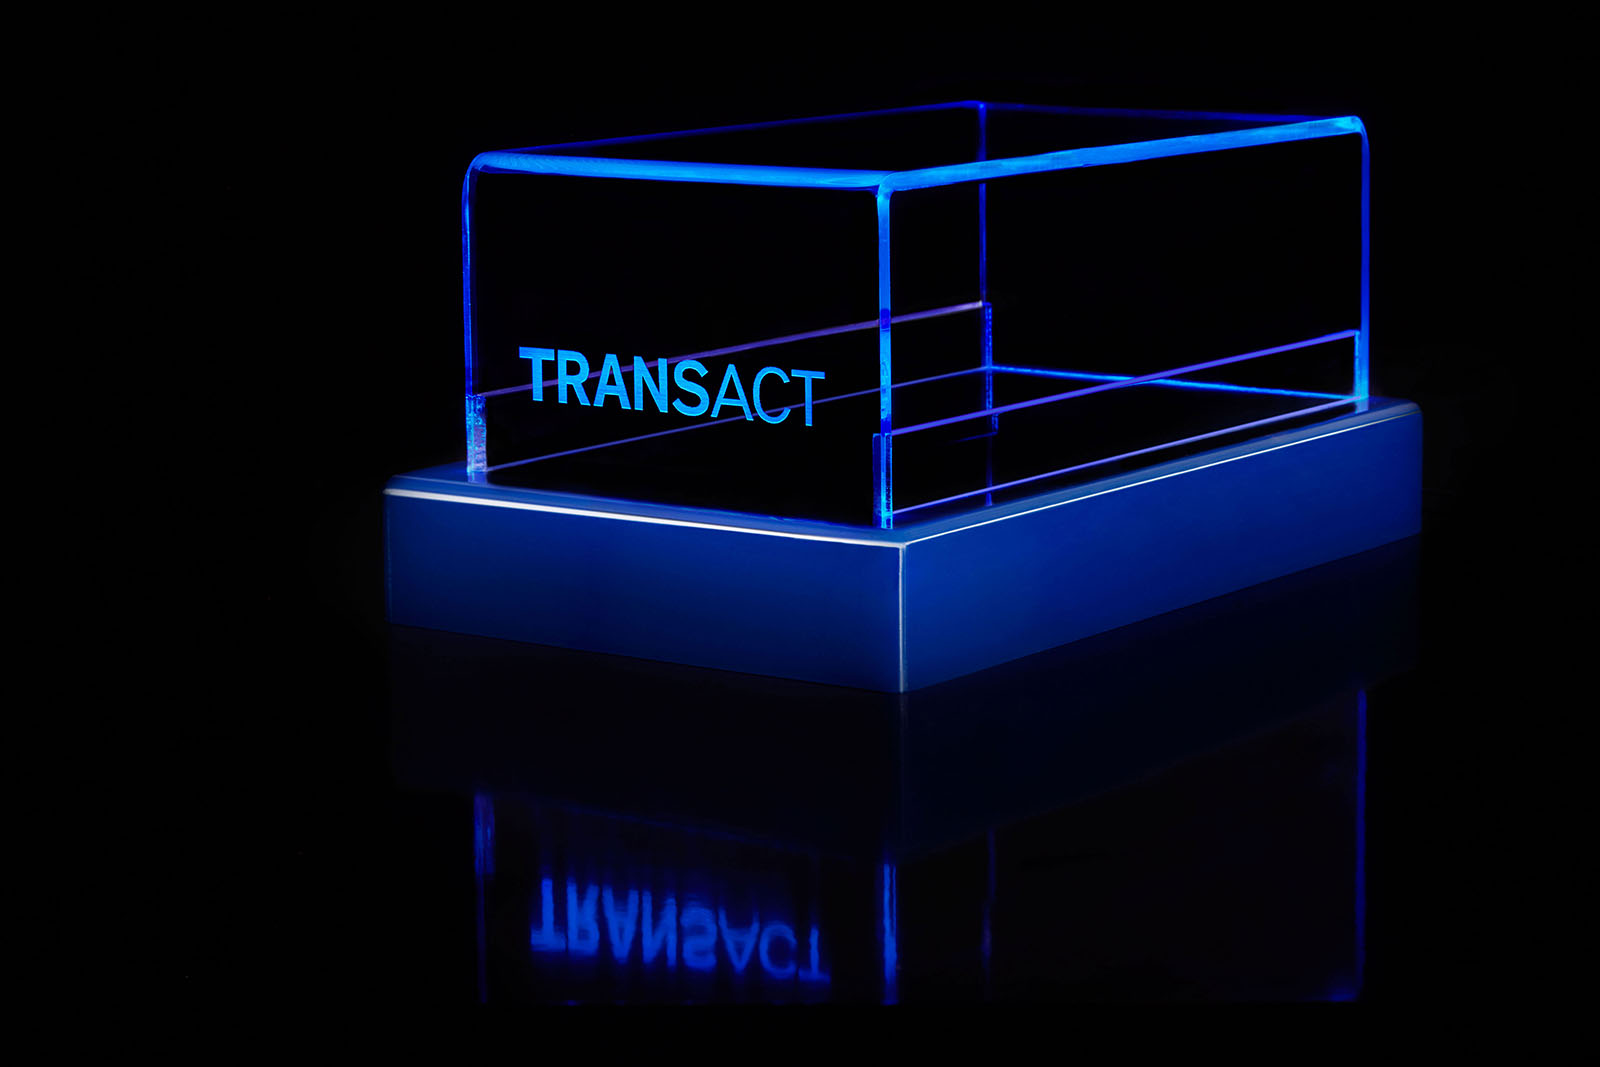 transact logo on LED display